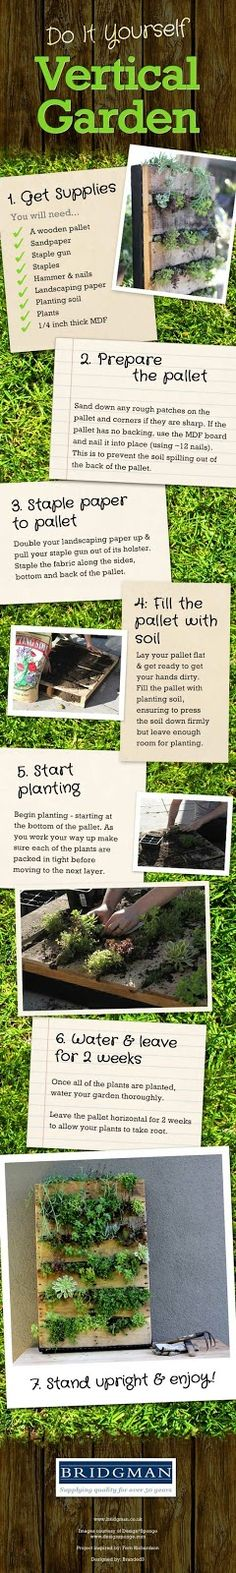 Easy Homesteading: DIY Vertical Pallet Garden